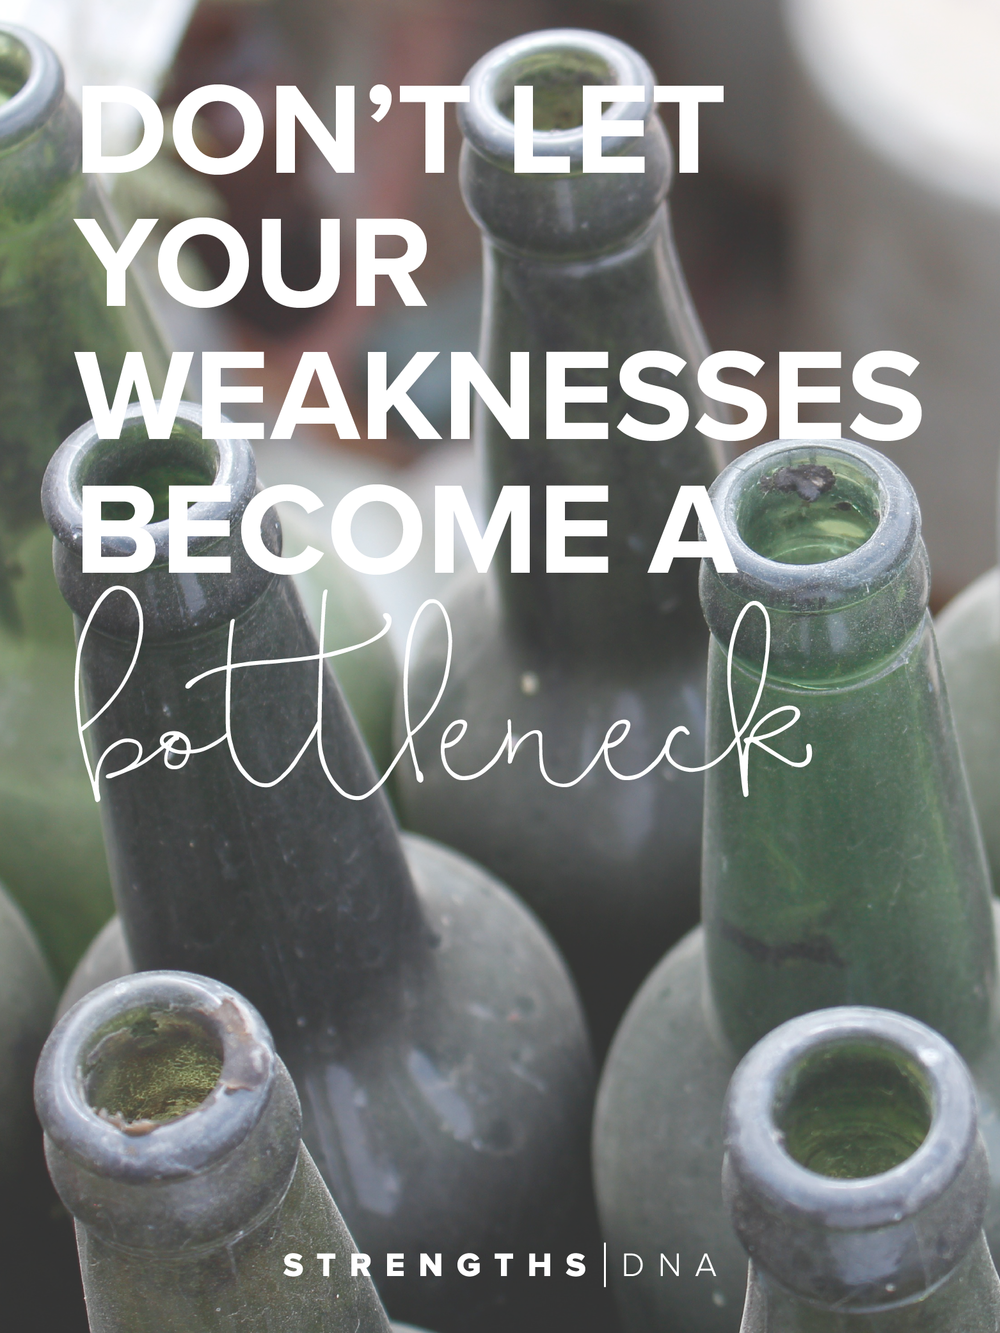 don t let your weaknesses become a bottleneck strengths dna don t let your weaknesses become a bottleneck by joy martinez personal strengths